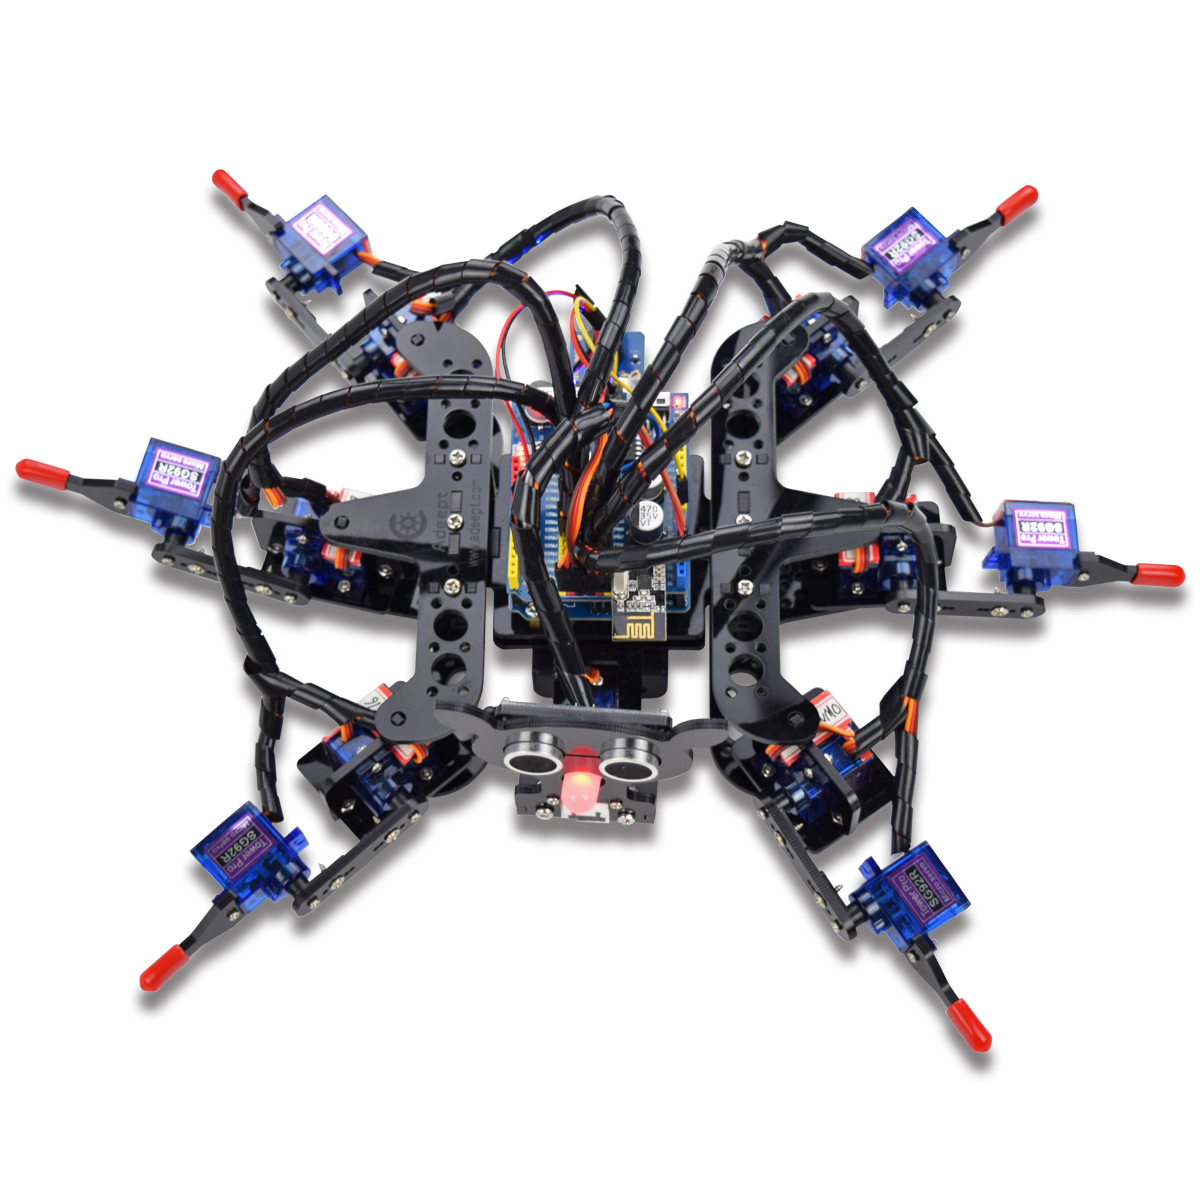 Adeept hexapod legs spider robot kit for arduino uno r